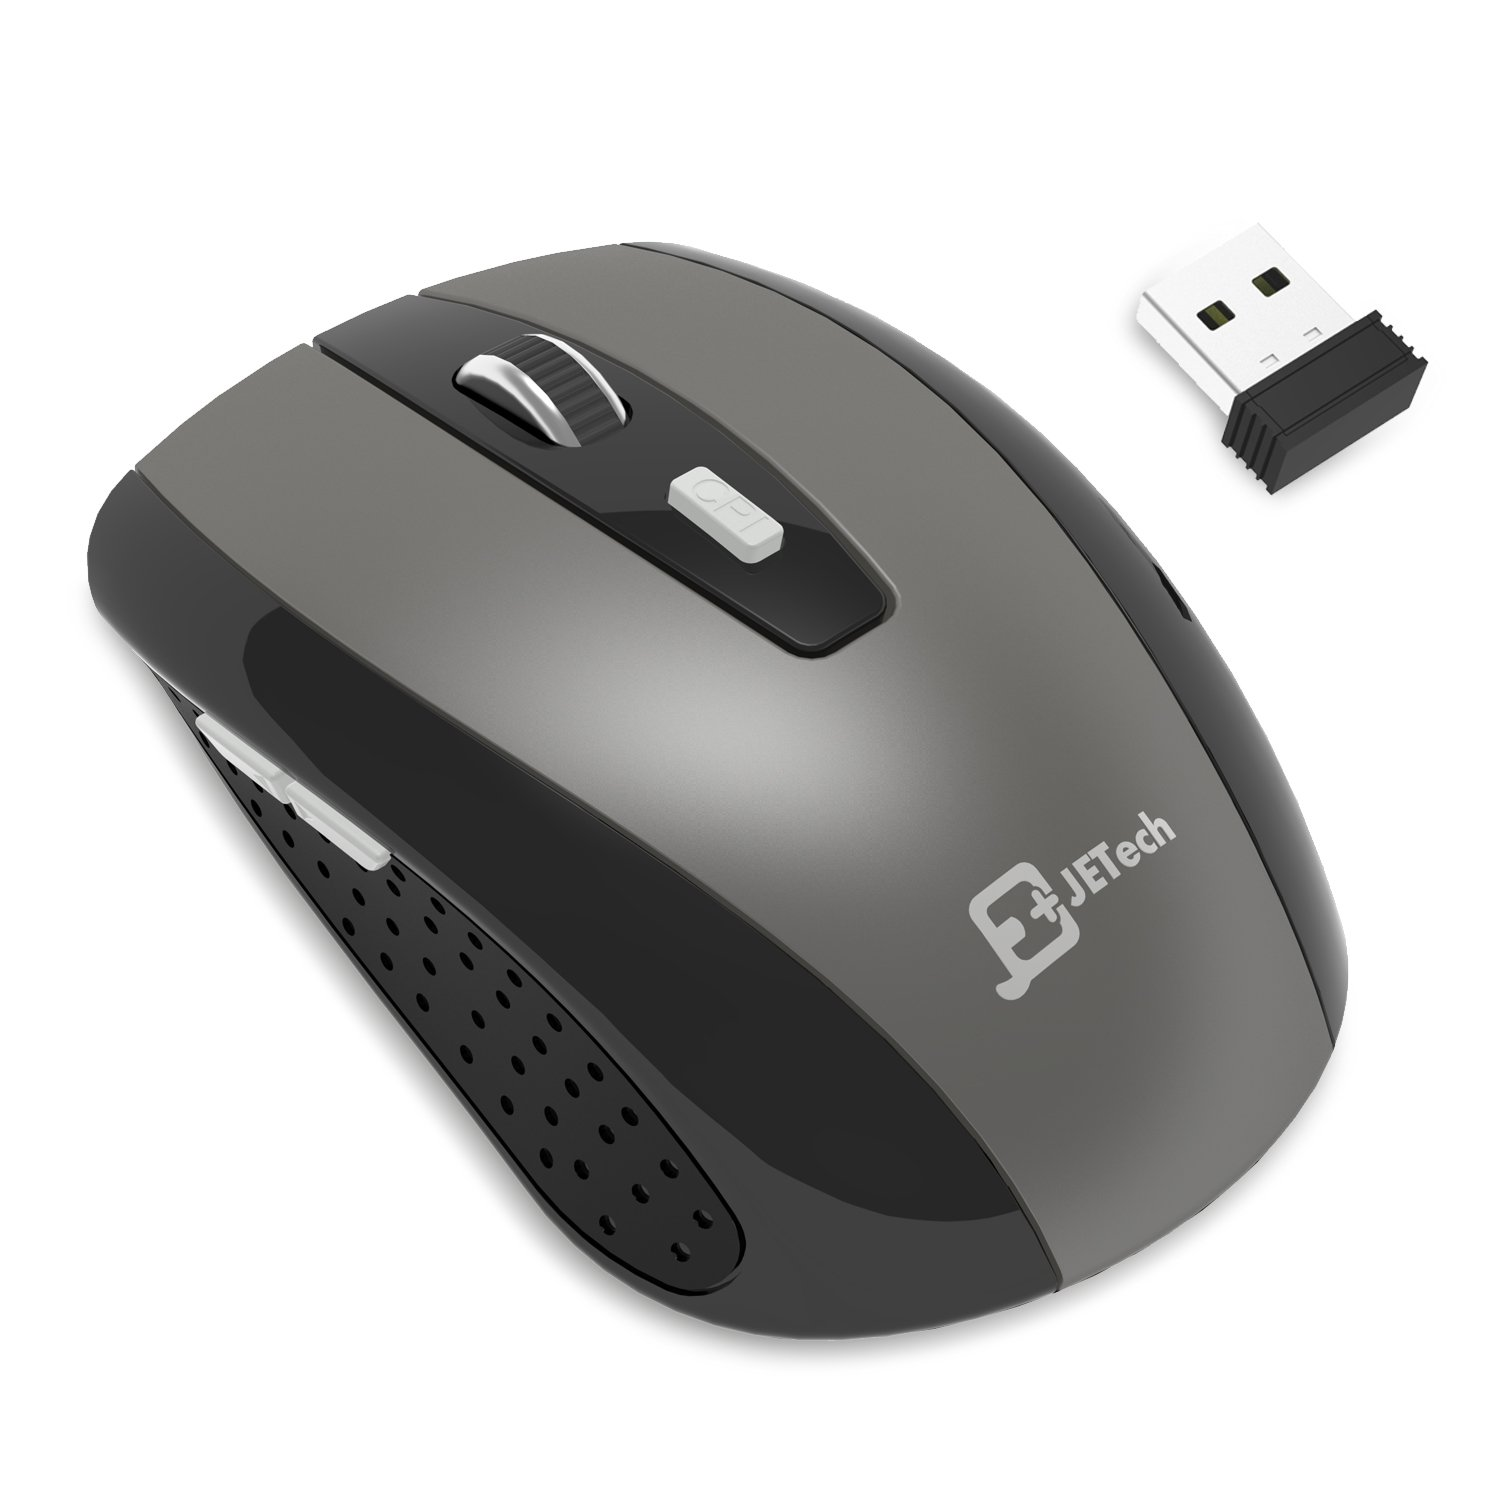 JETech 2.4Ghz Wireless Mobile Optical Mouse with 6 Buttons, 3 DPI Levels with USB Wireless Receiver (0770)